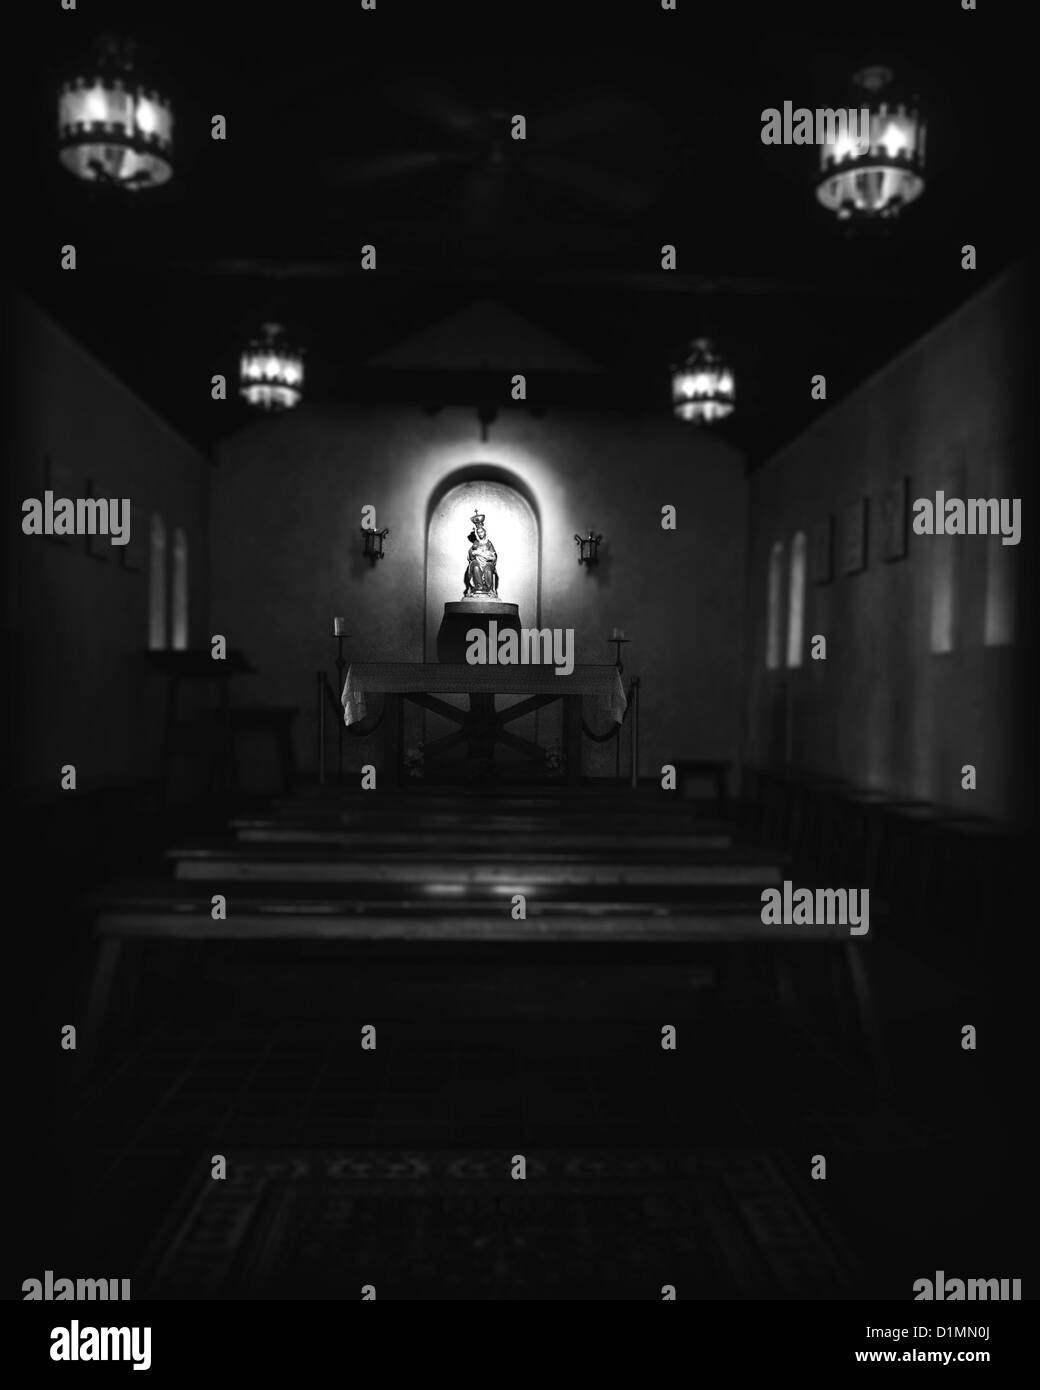 Black and white photograph of the inside of a small church. Our Lady of La Leche Shrine, St. Augustine Florida - Stock Image